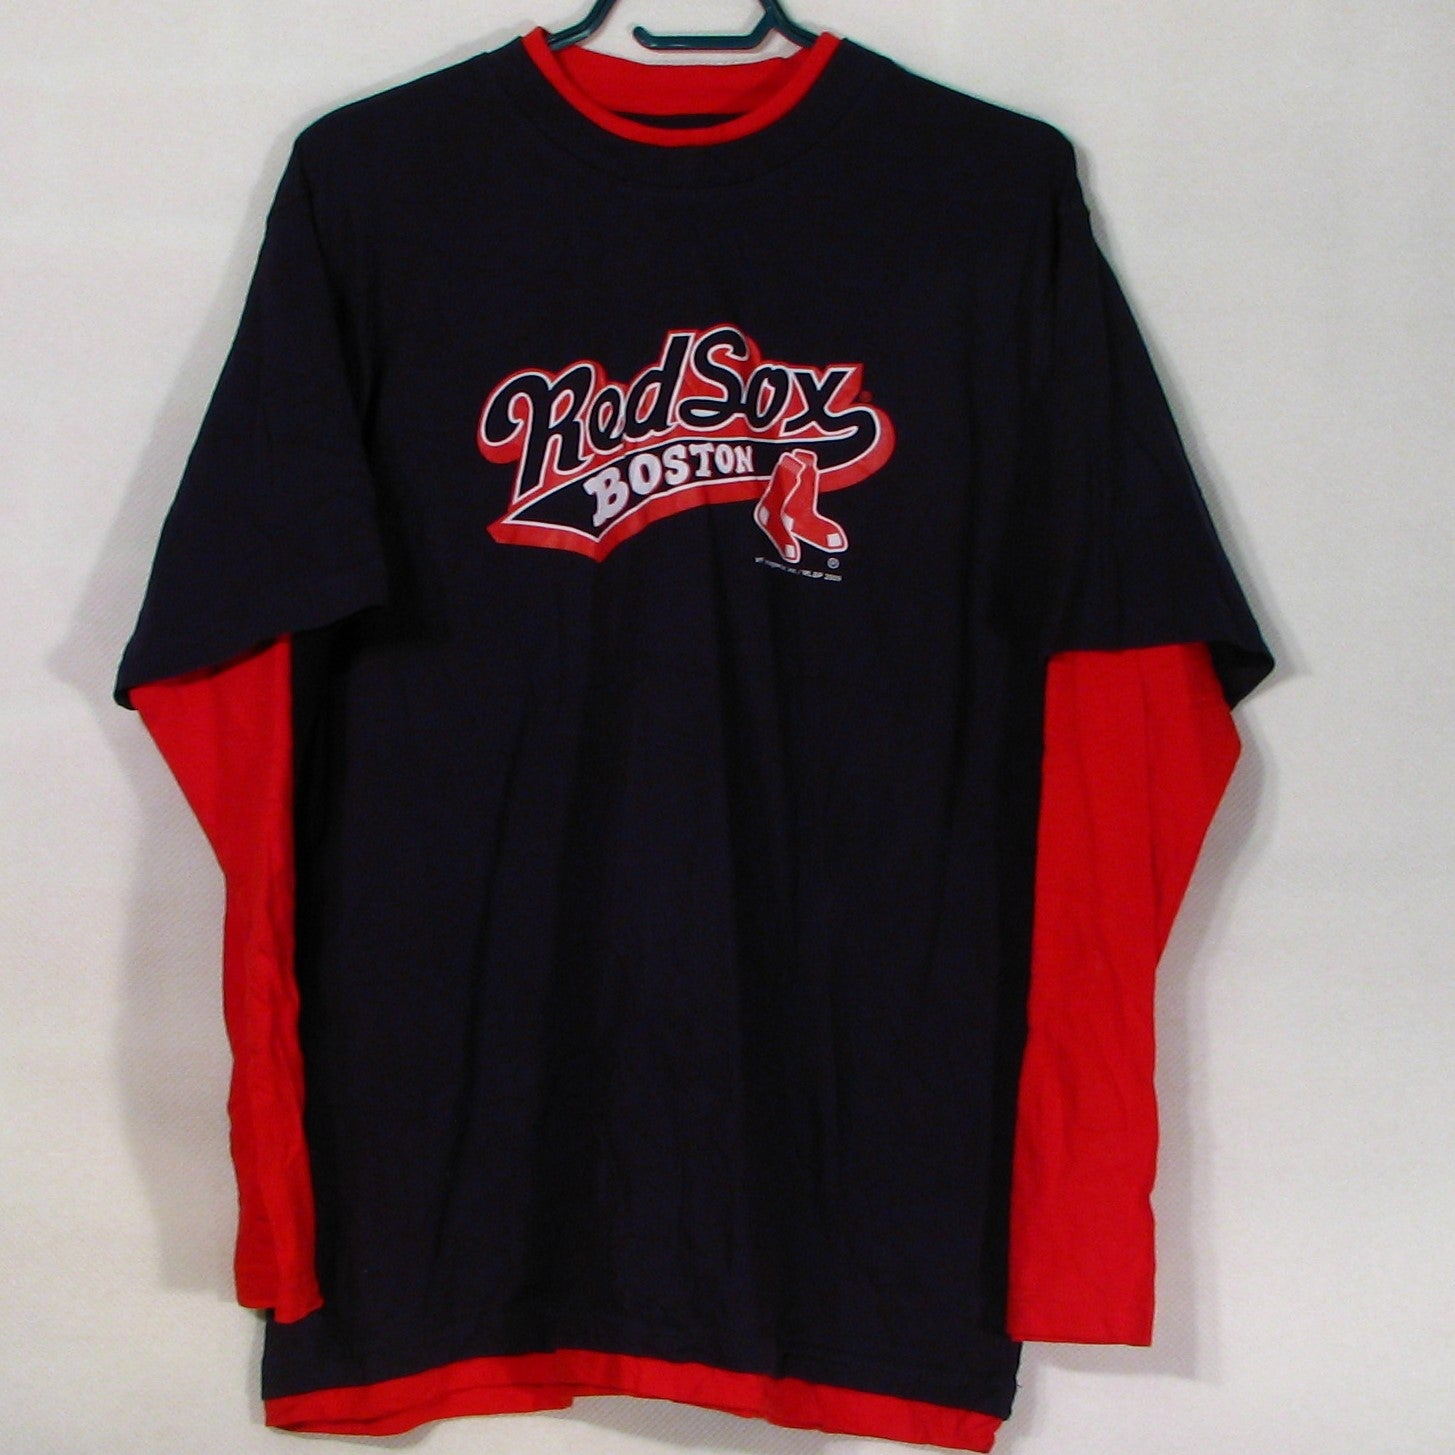 2009 Boston Red Sox Longsleeved T-Shirt